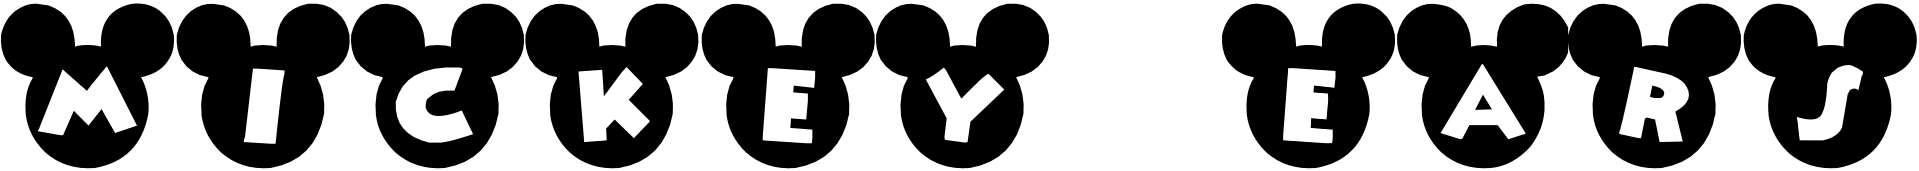 Mickey Mouse Free Fonts Fontspace